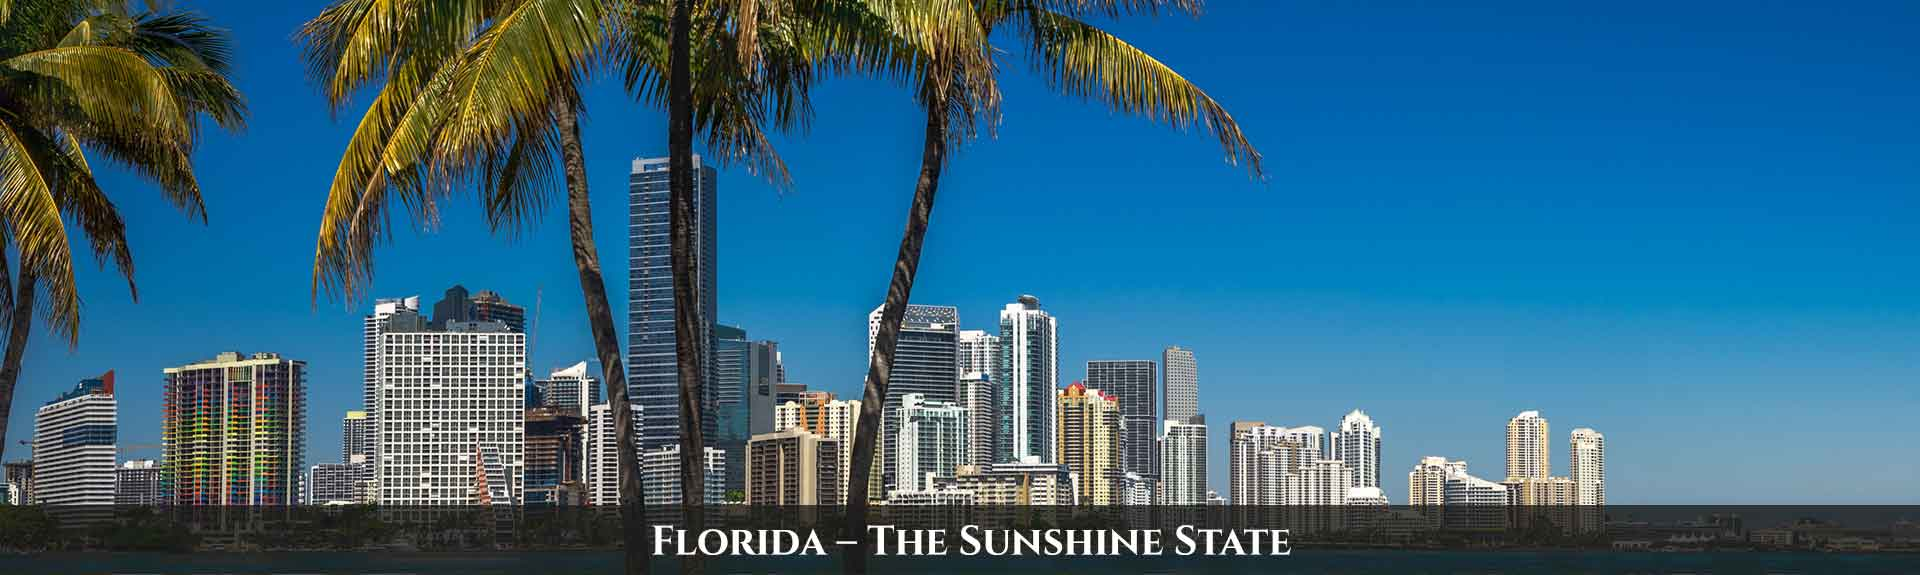 Tours in Florida